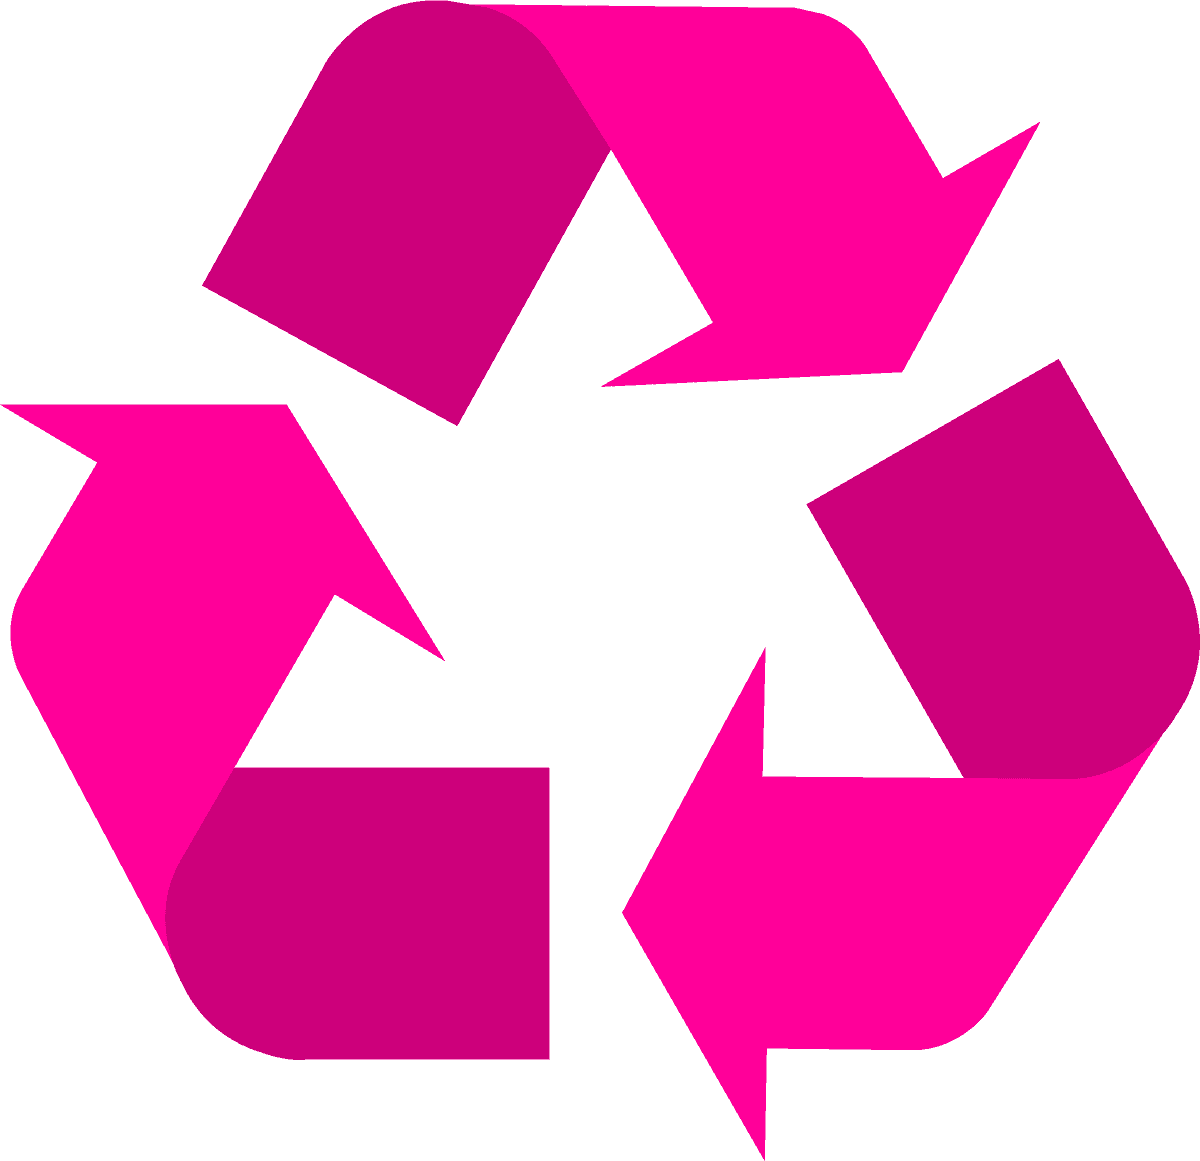 recycling-symbol-icon-twotone-magenta